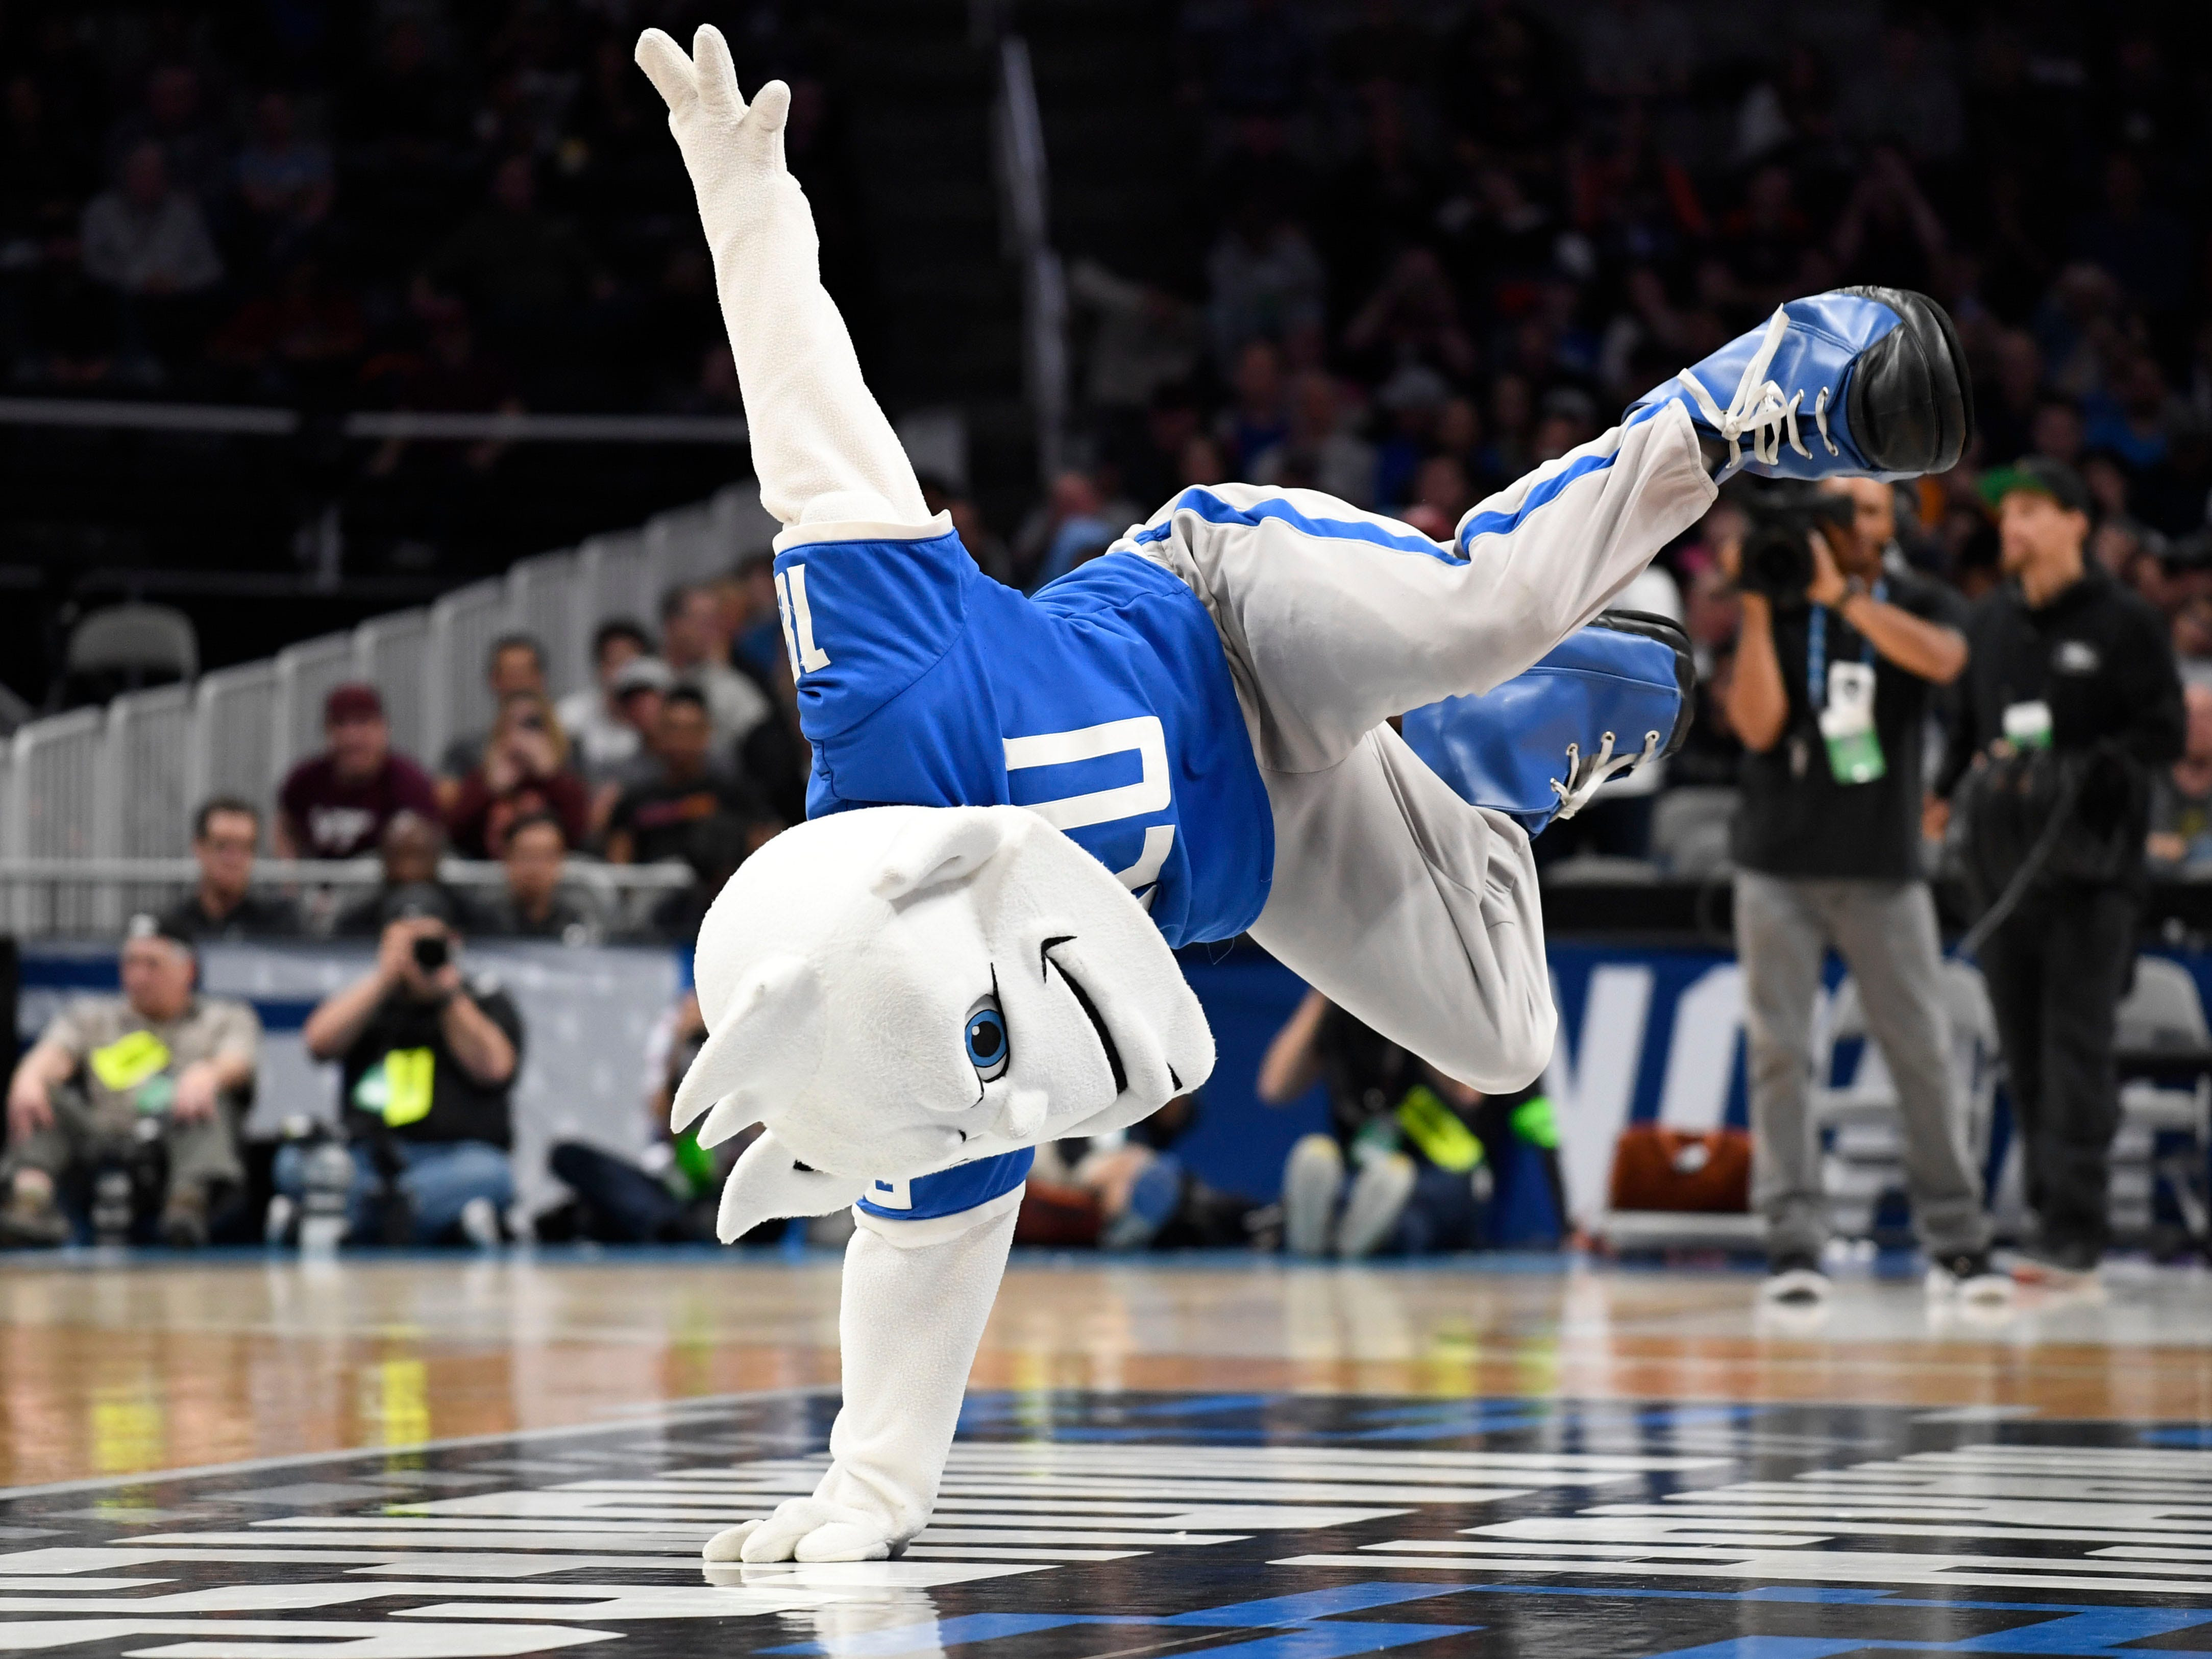 First round: The Saint Louis Billikens mascot performs during the game against the Virginia Tech Hokies.